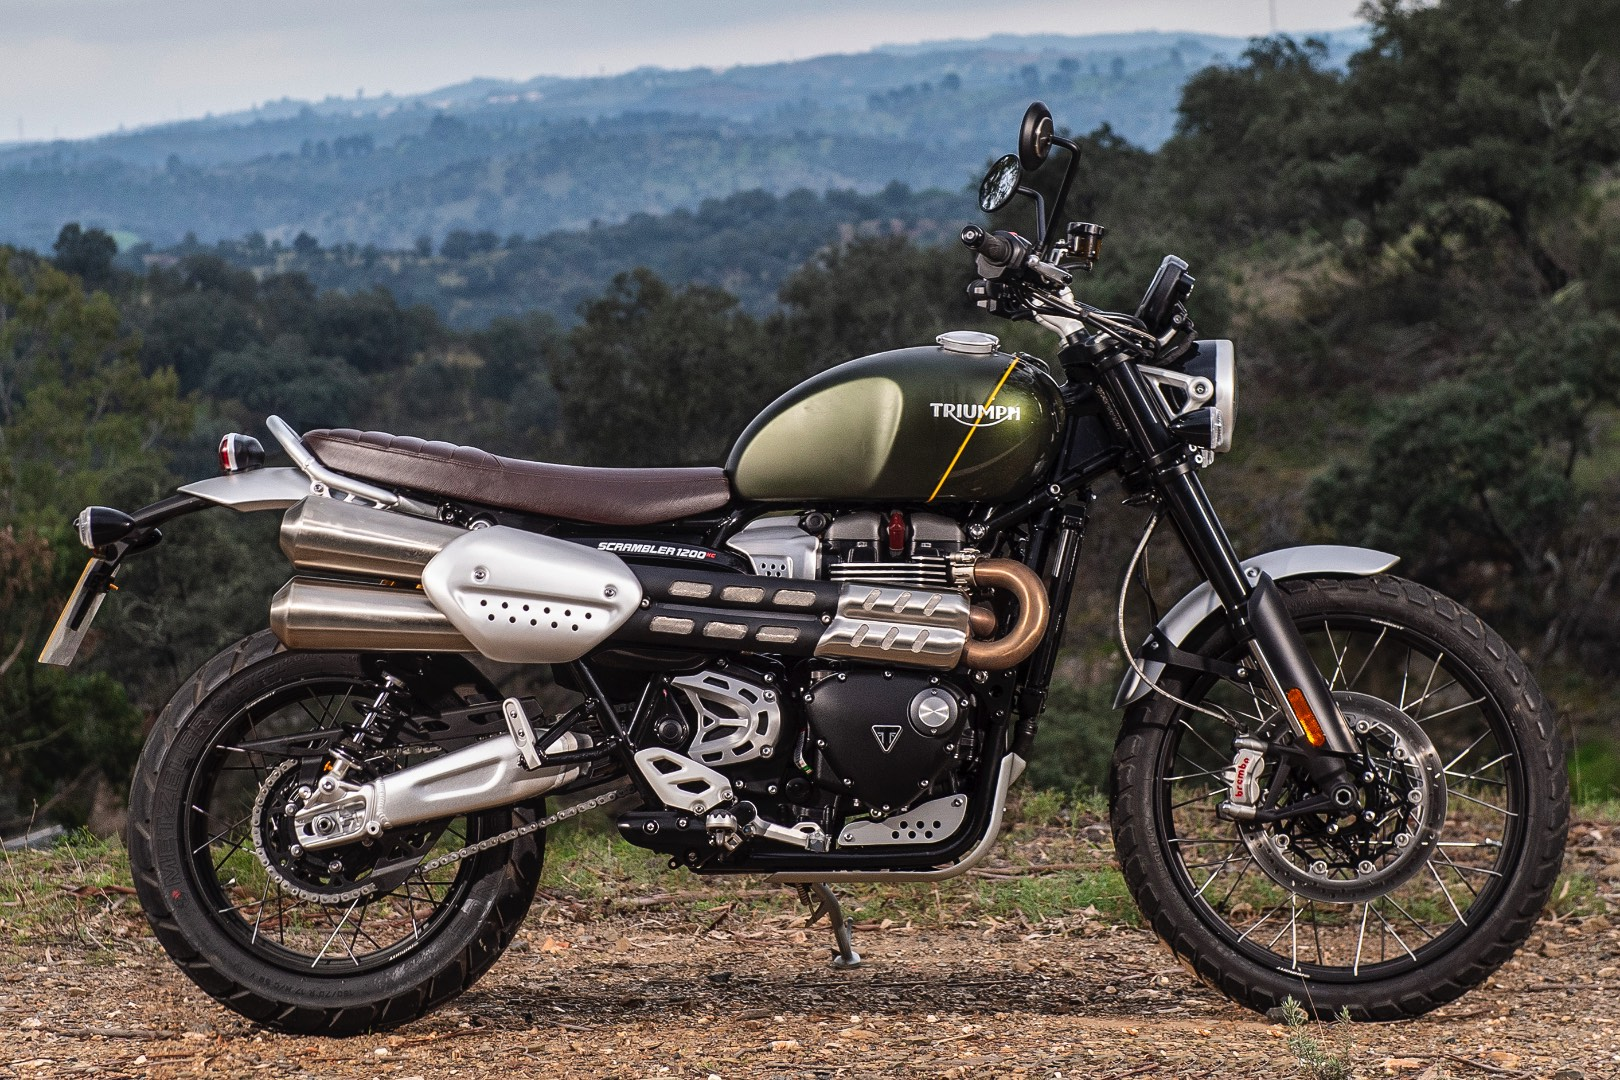 2019 Triumph Scrambler 1200 XC pricing